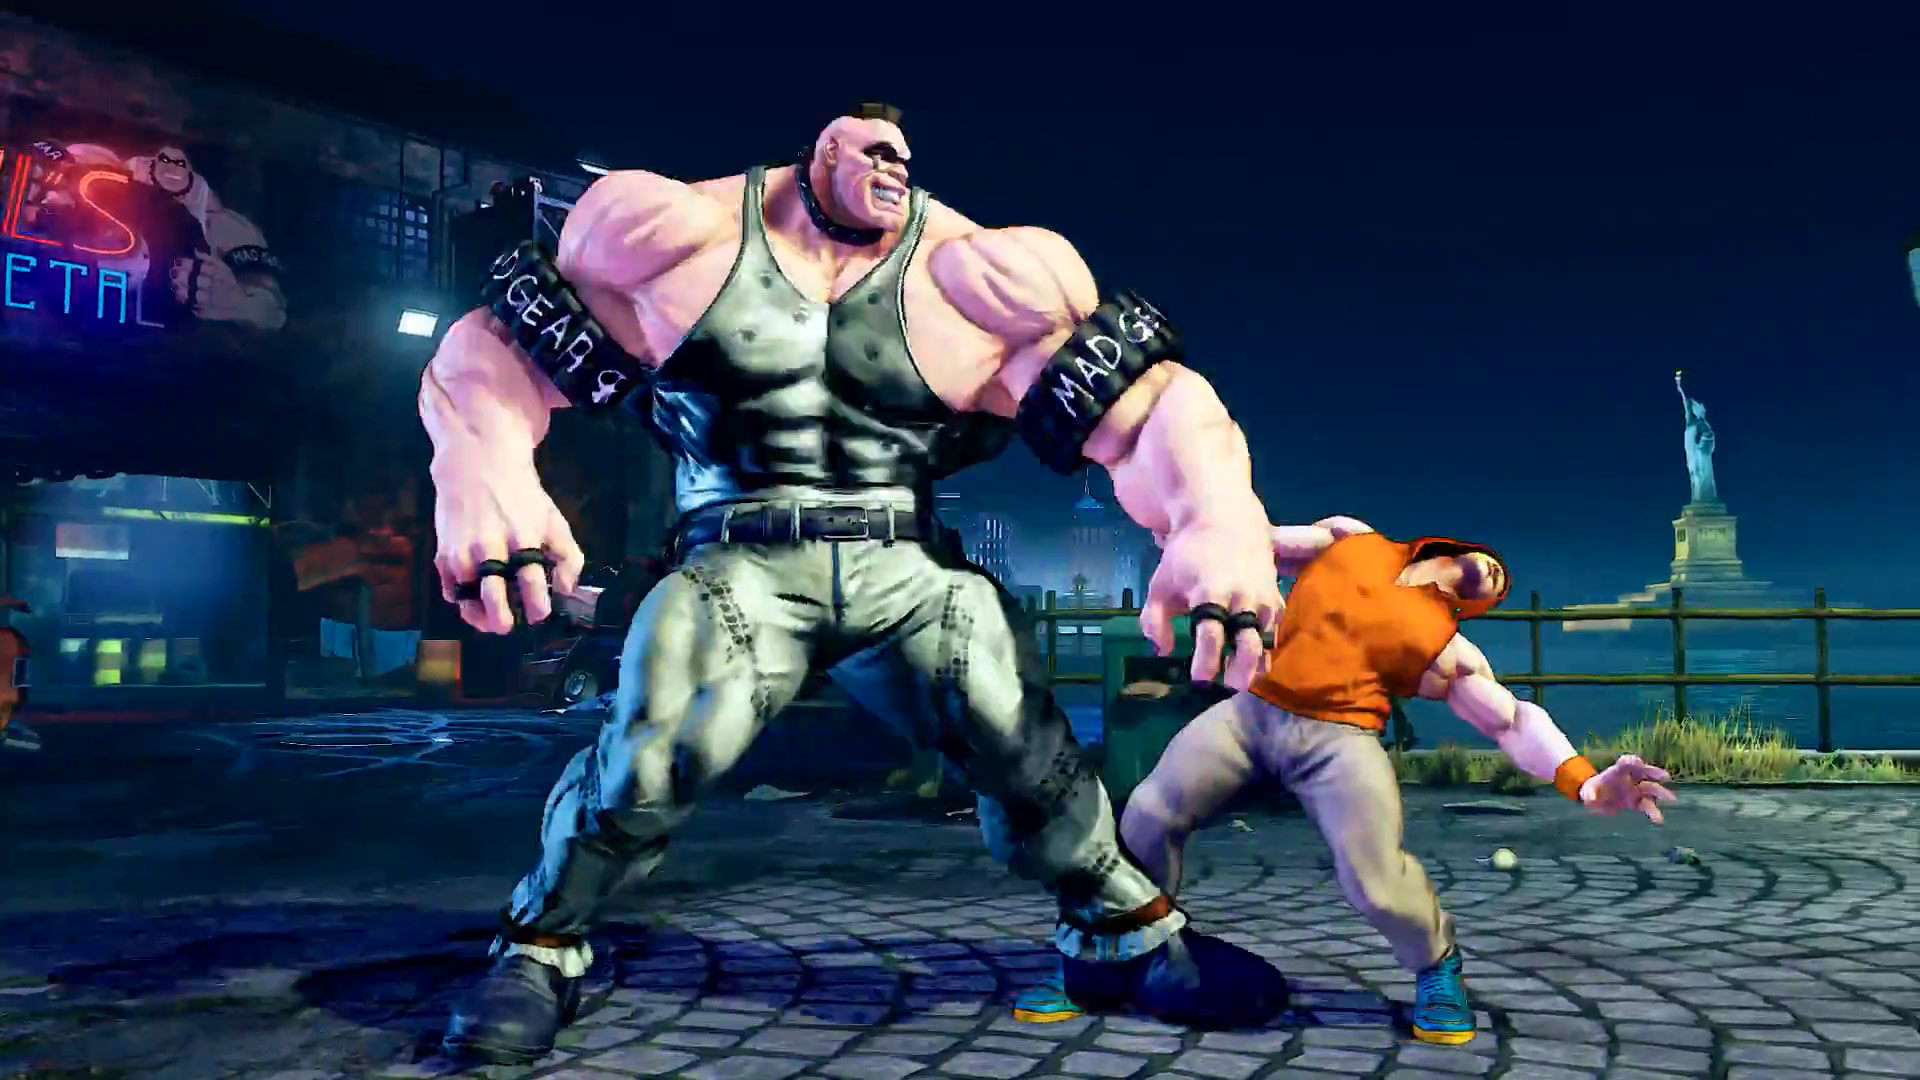 Abigail Street Fighter 5 screen shots 4 out of 11 image gallery